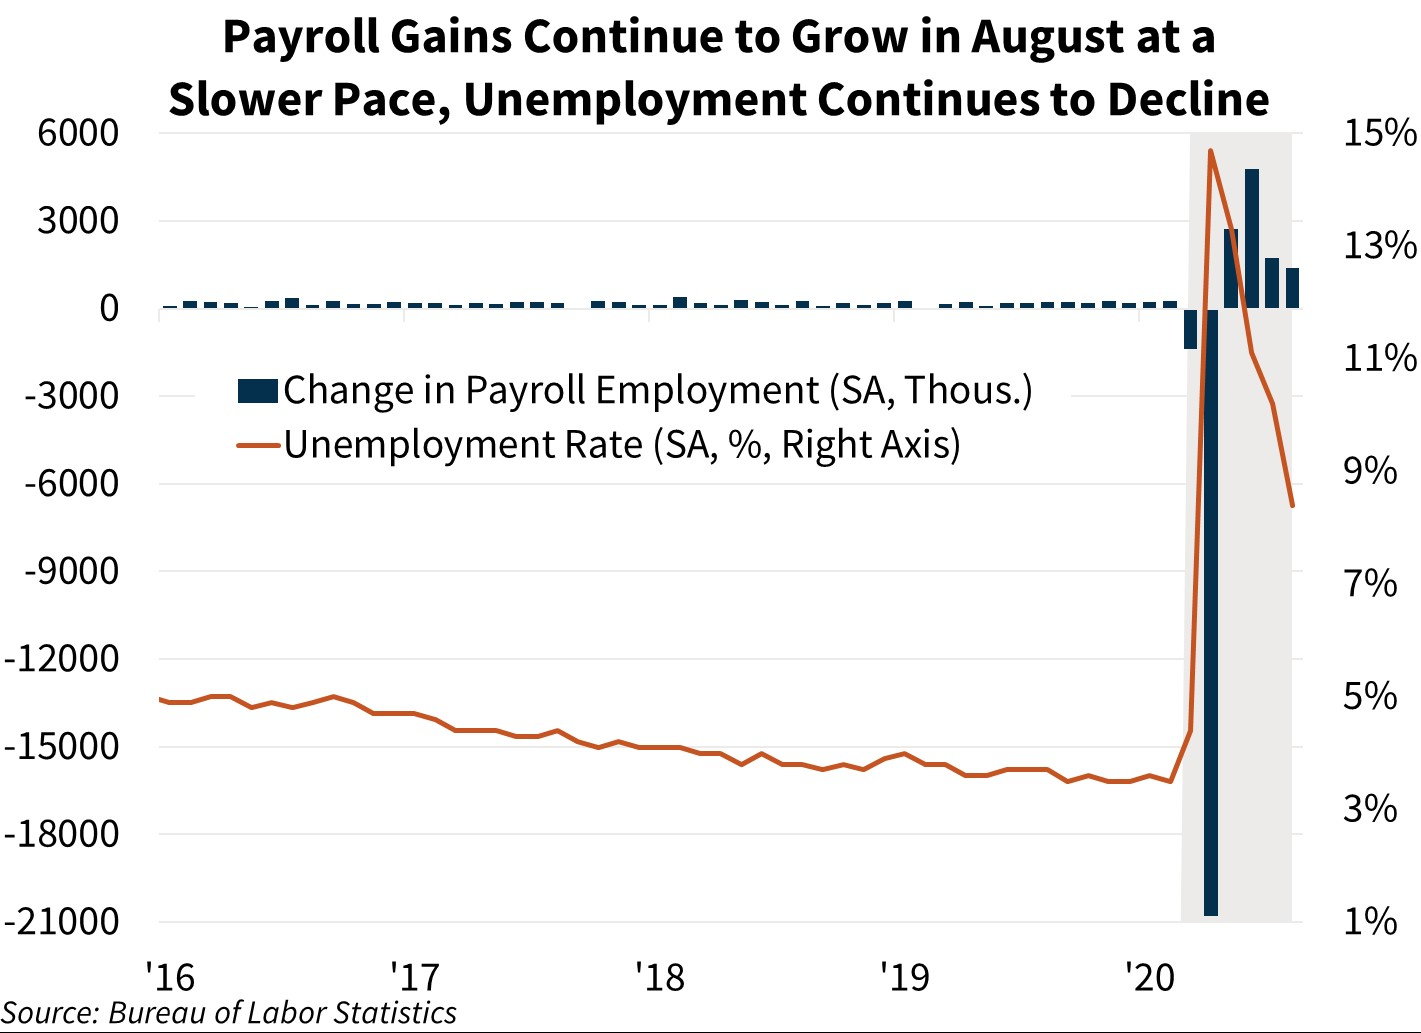 Payroll Gains Continue to Grow in August at a Slower Pace, Unemployment Continues to Decline